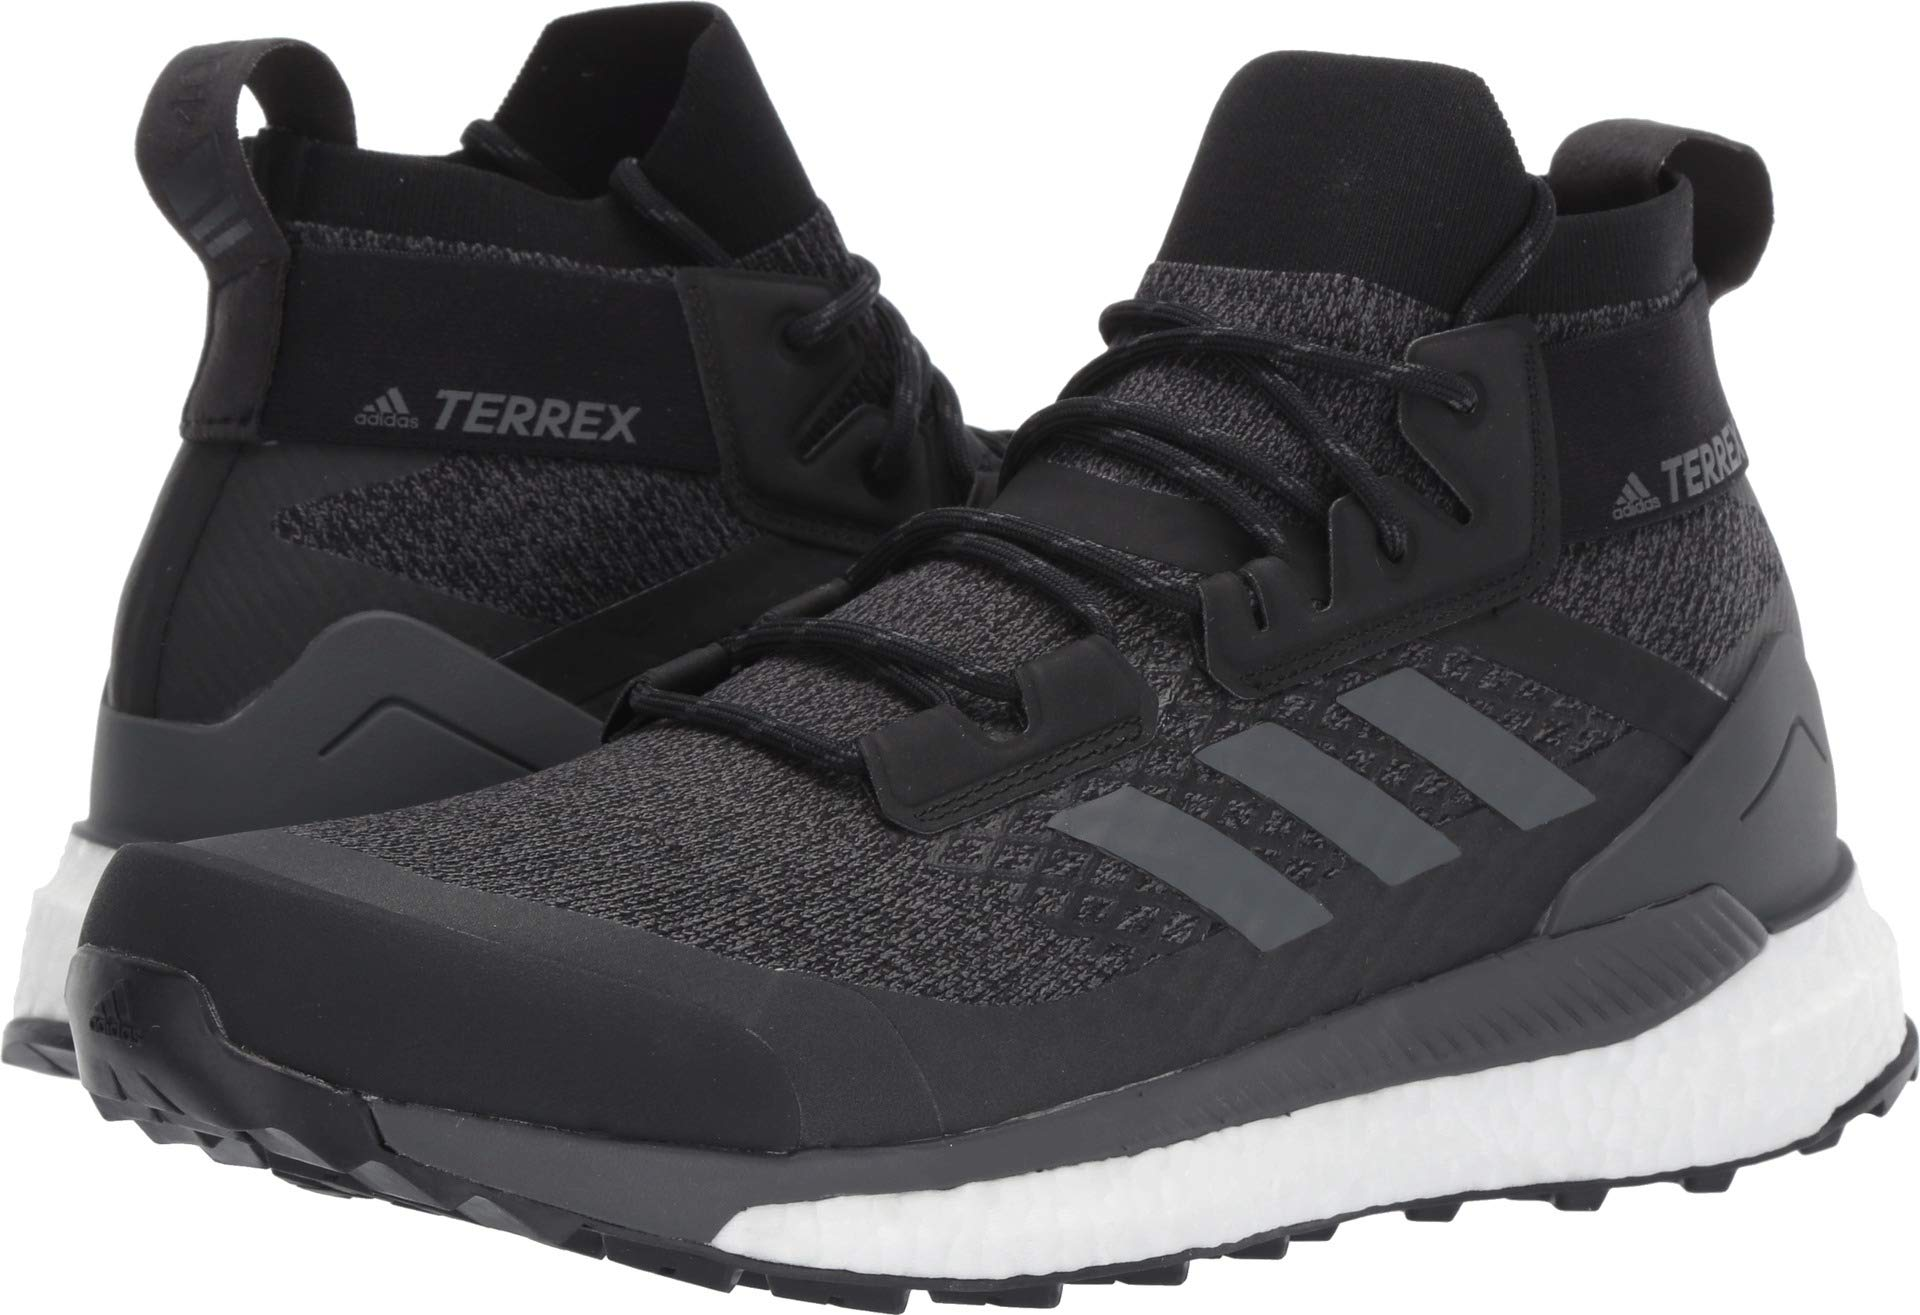 adidas outdoor Terrex Free Hiker Boot - Men's Black/Grey Six/Active Orange, 9.0 by adidas outdoor (Image #1)